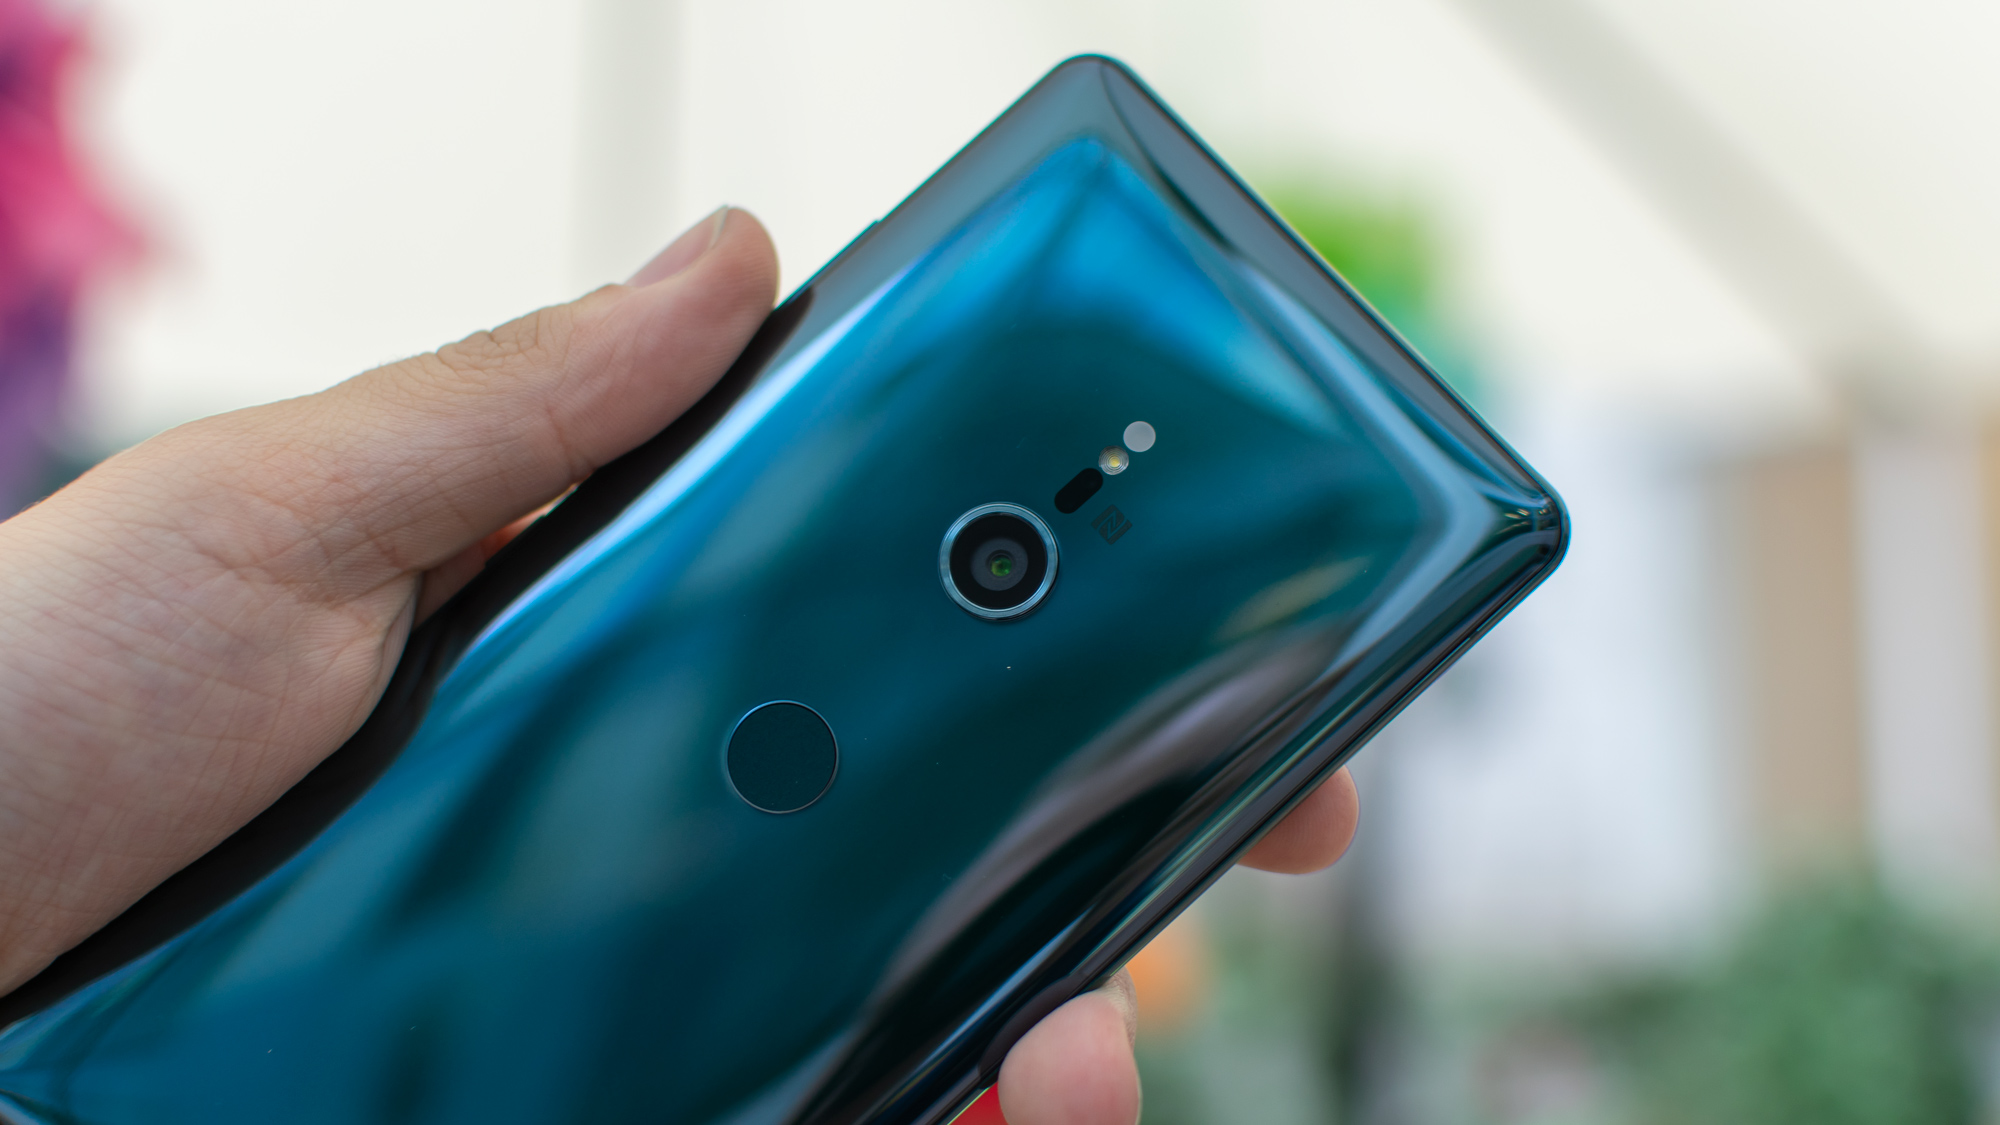 IFA 2018: Sony Xperia XZ3 with Android Pie, wireless charging launched